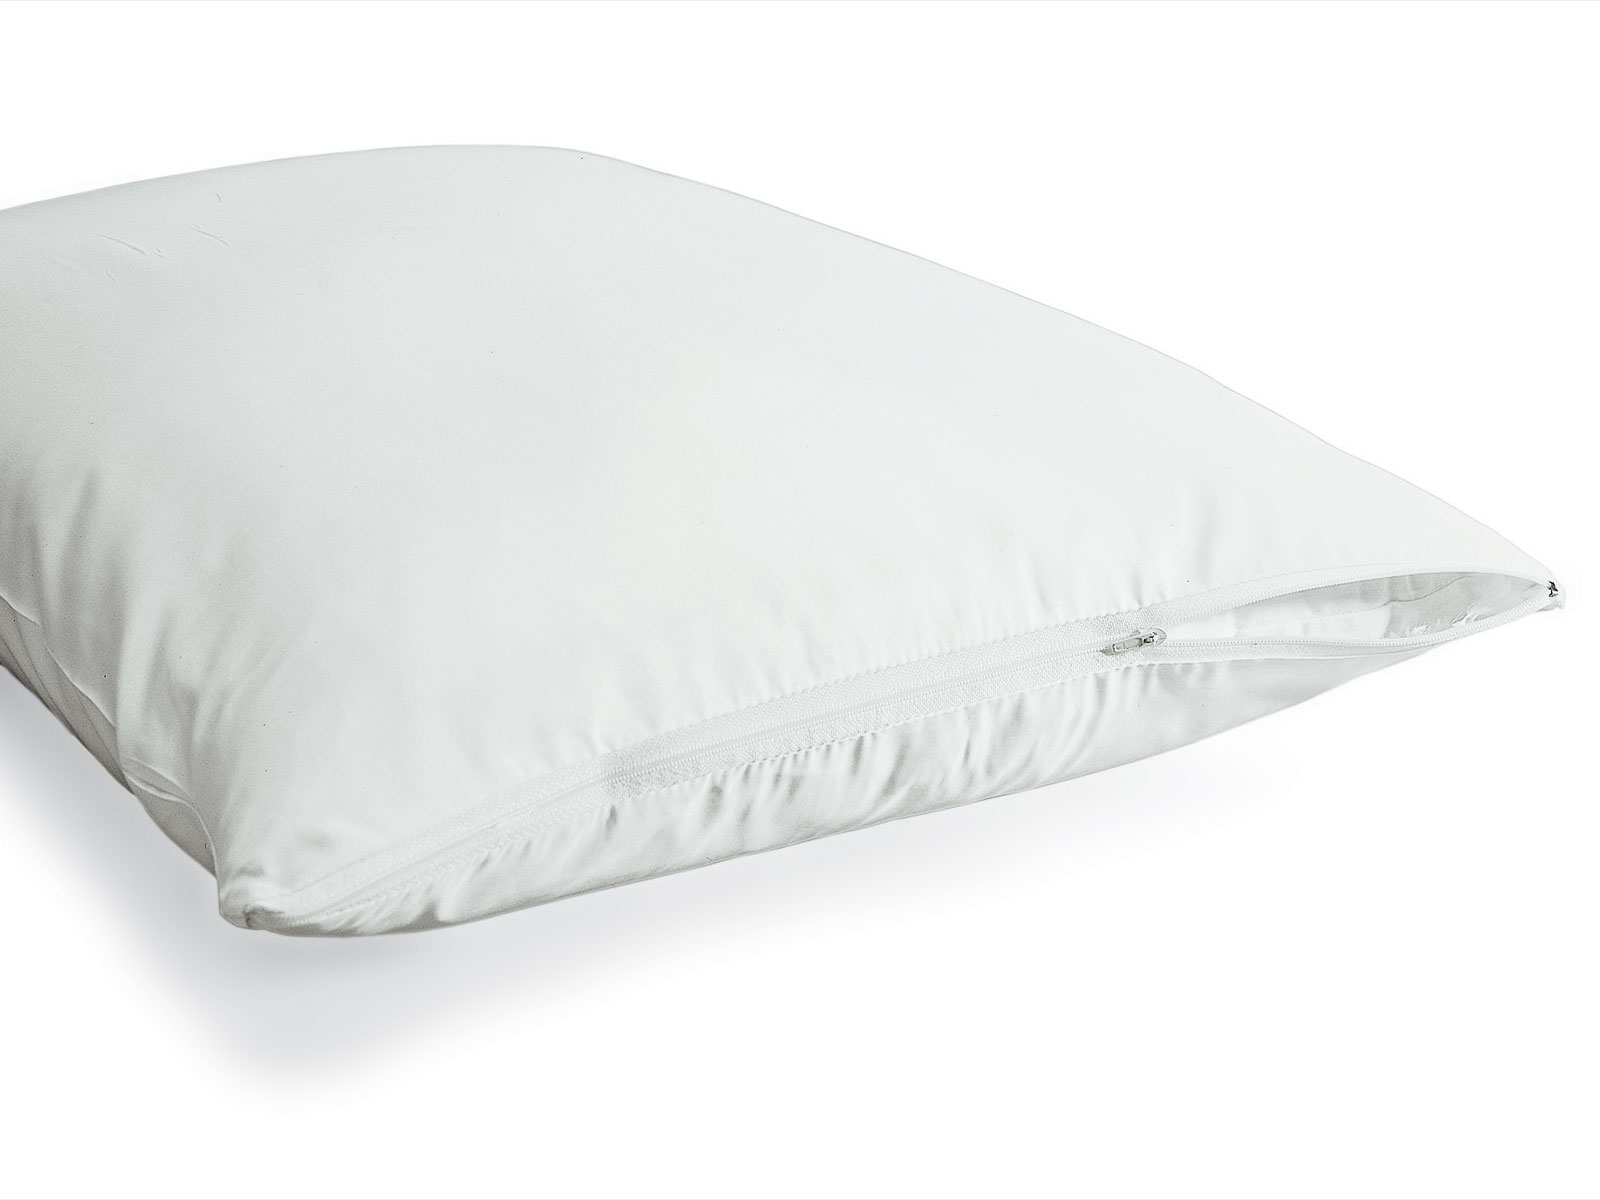 Protector_Pillow-cotton.jpg